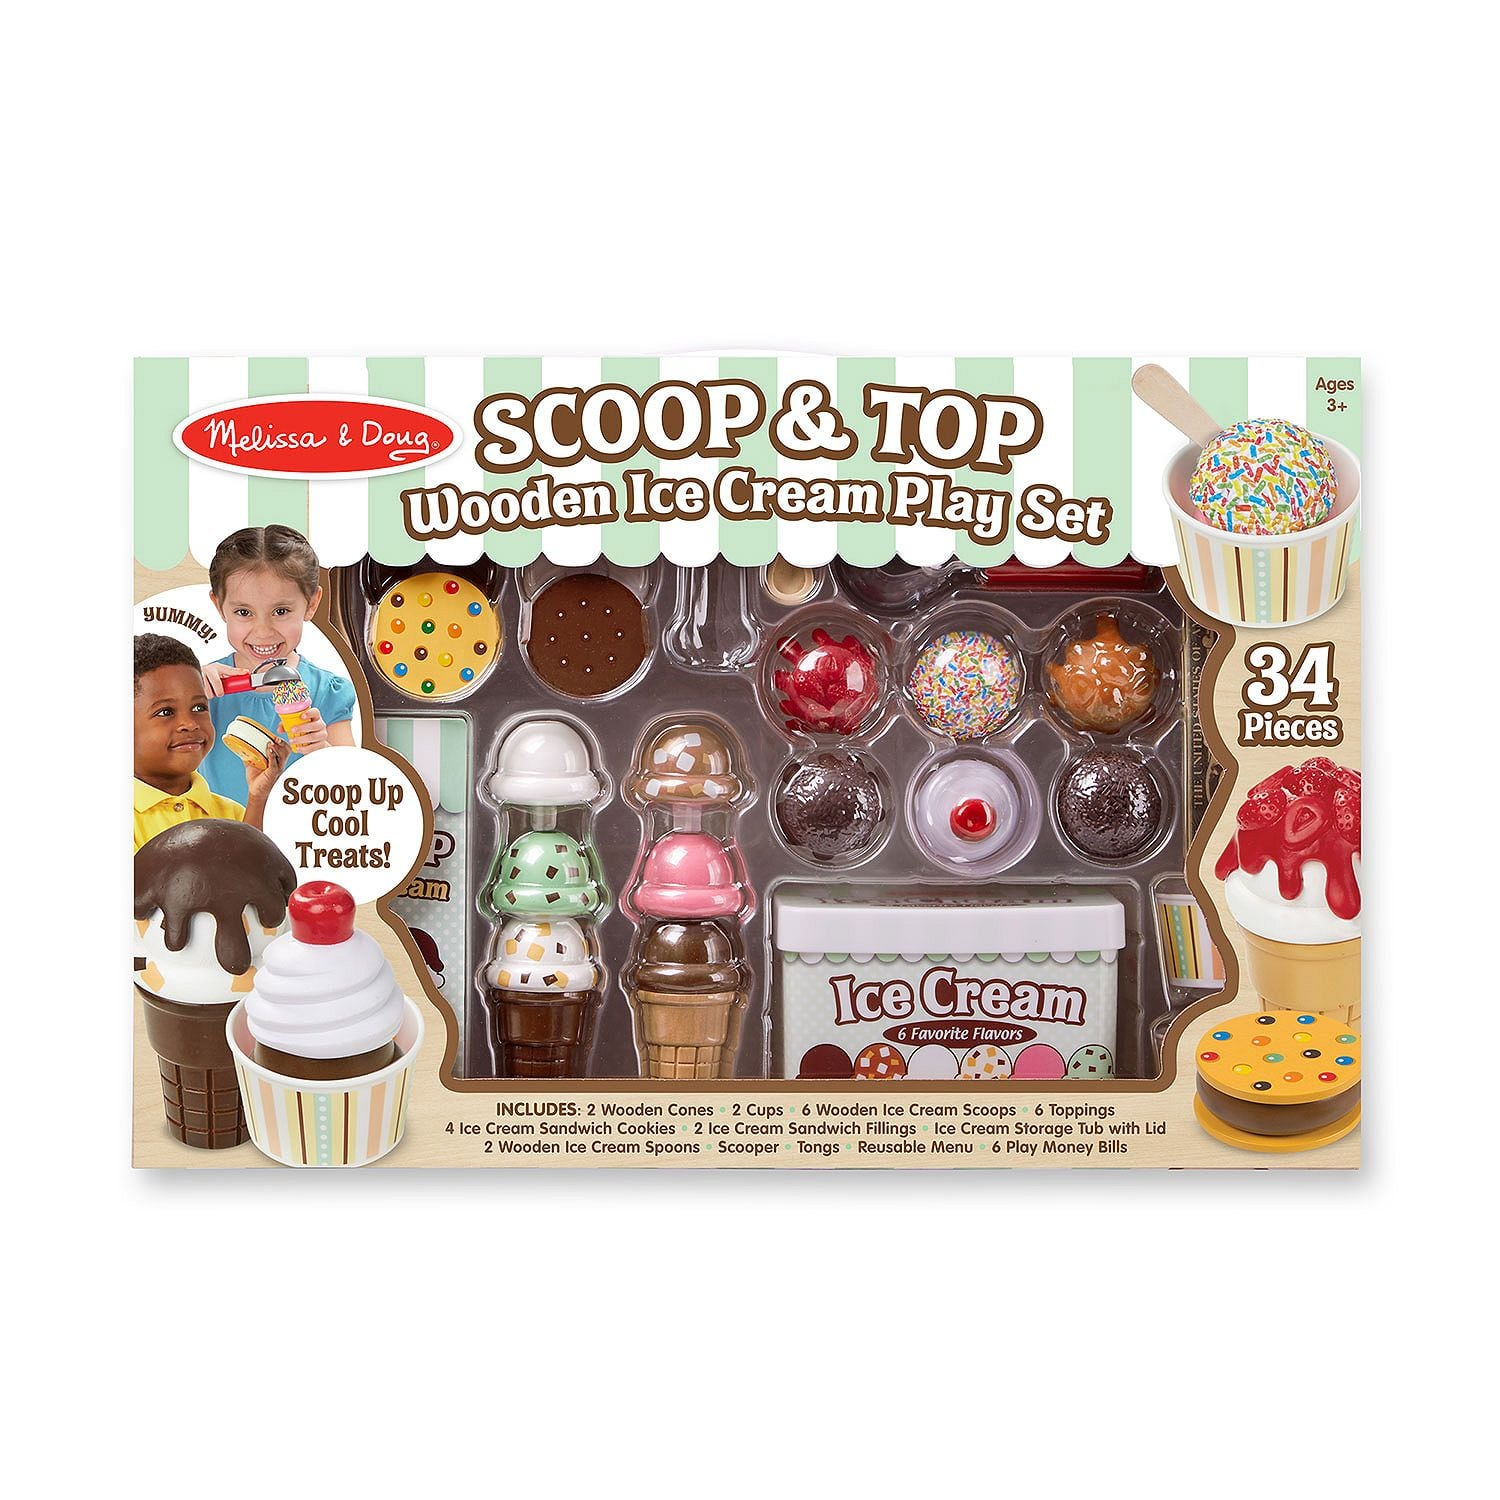 Melissa & Doug 34-piece Scoop & Top Wooden Ice Cream Play Set only $19.99 - Online & B&M